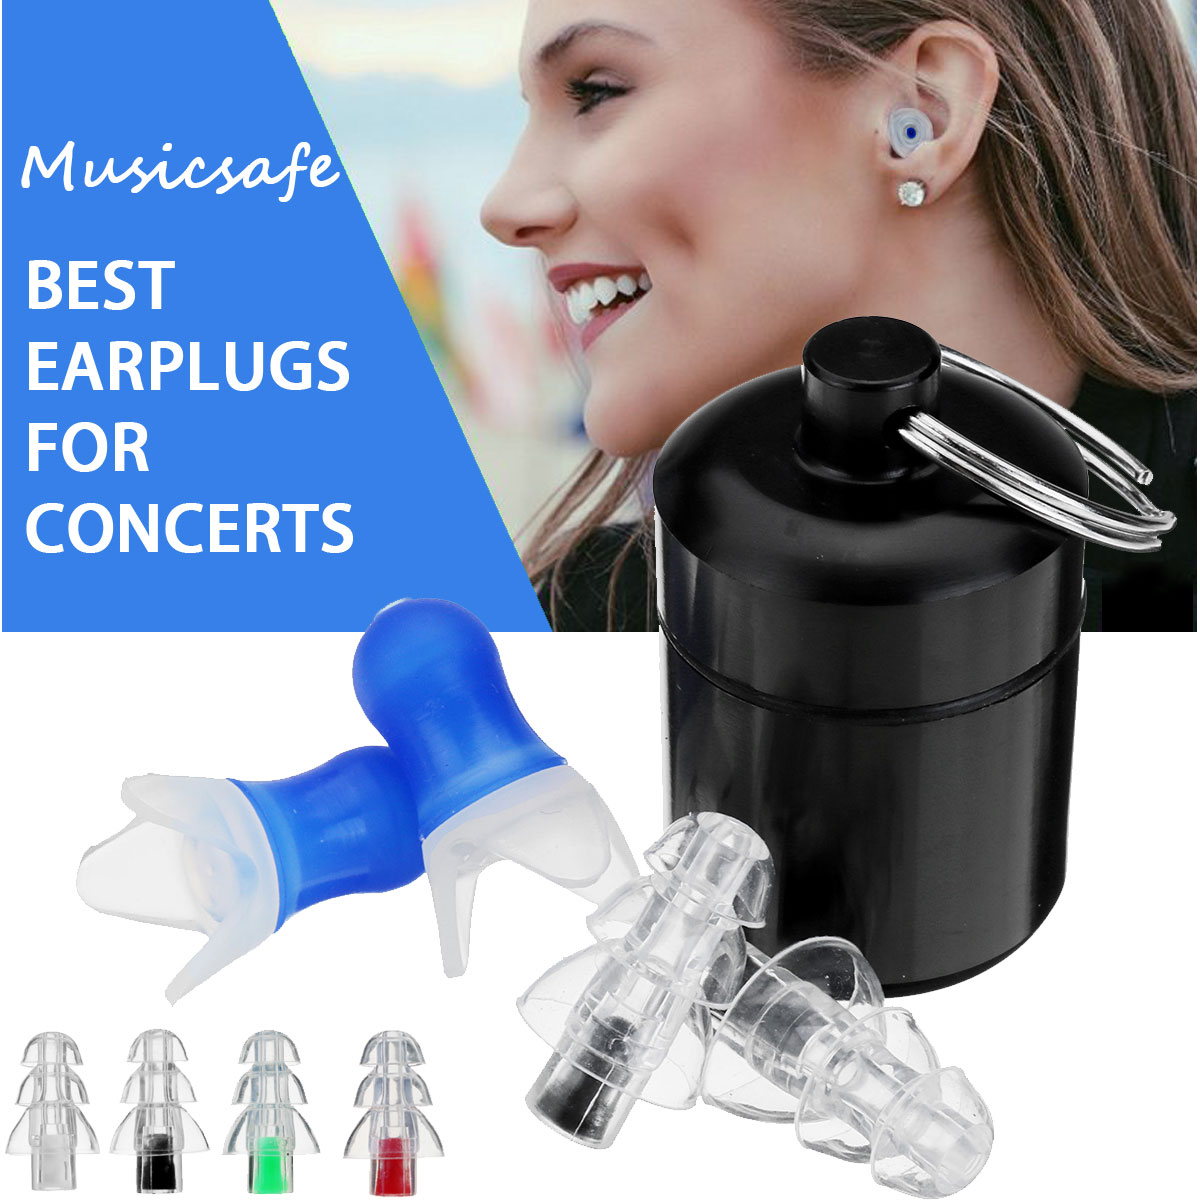 2Pcs 27db Noise Cancelling Earplugs Hearing Protection Reusable Silicone Ear Plugs For Sleep Concerts Musician Bar Drummer2Pcs 27db Noise Cancelling Earplugs Hearing Protection Reusable Silicone Ear Plugs For Sleep Concerts Musician Bar Drummer